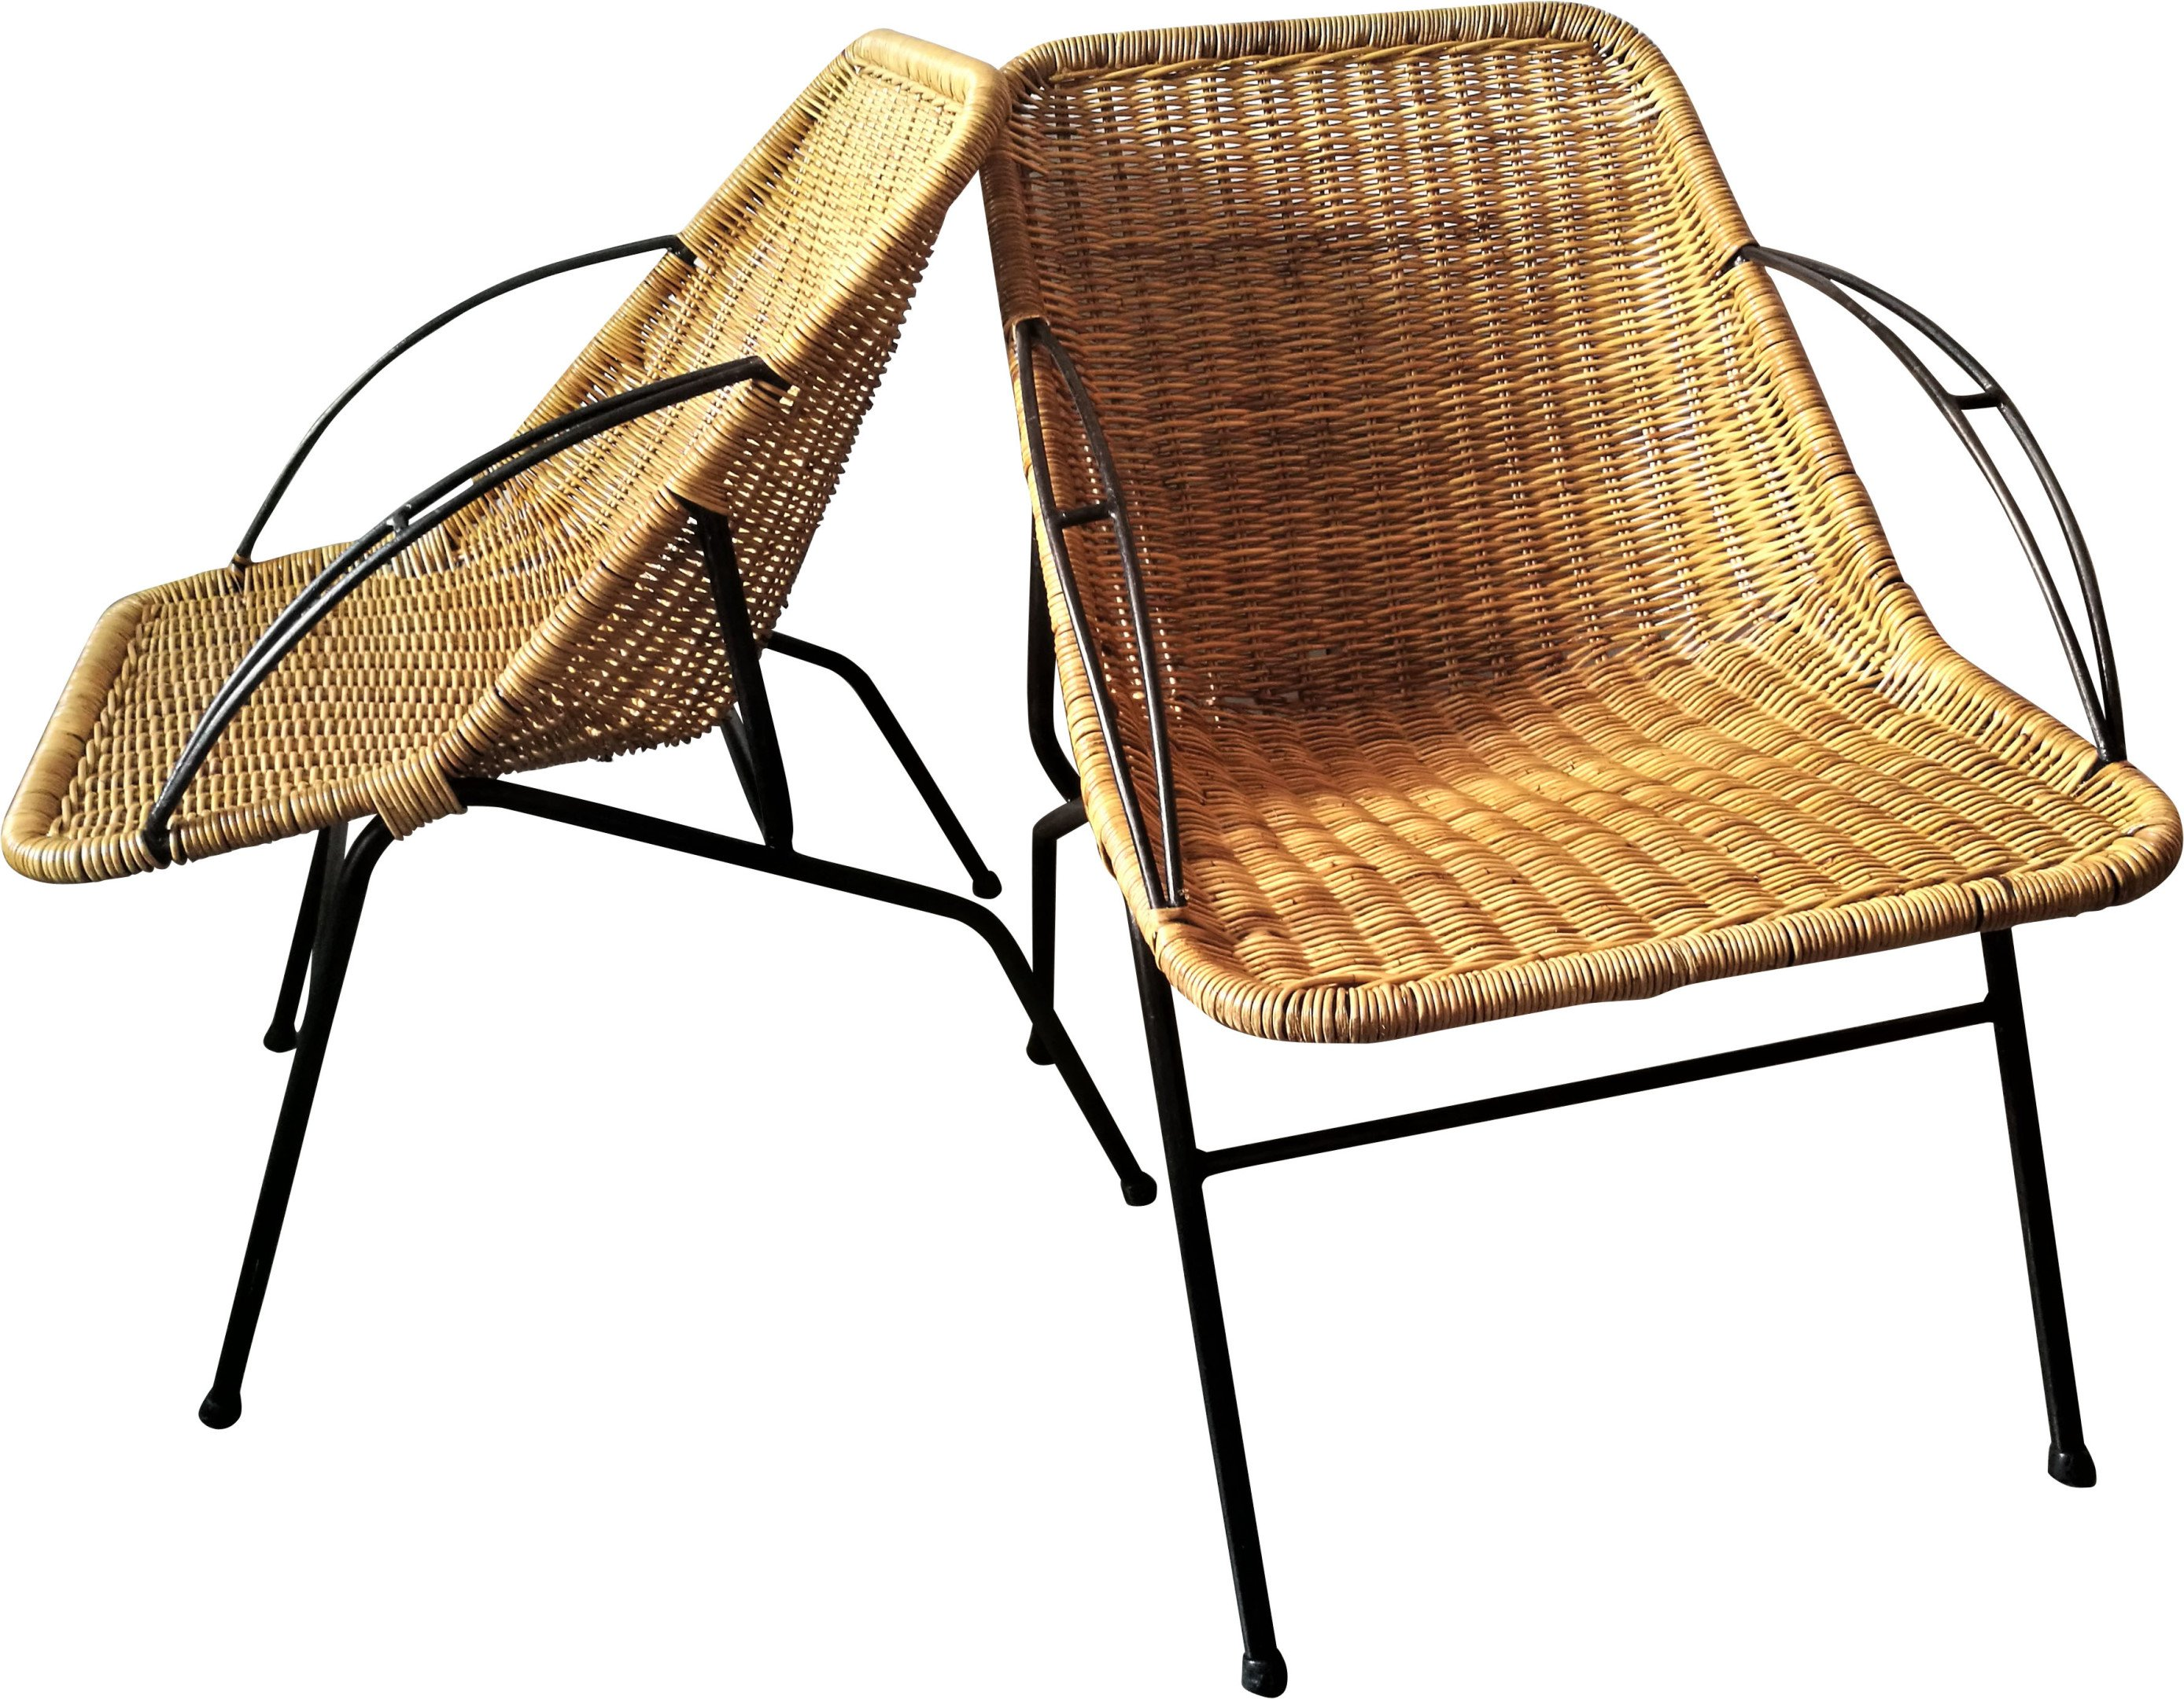 Pair of Wicker Chairs, 1970s